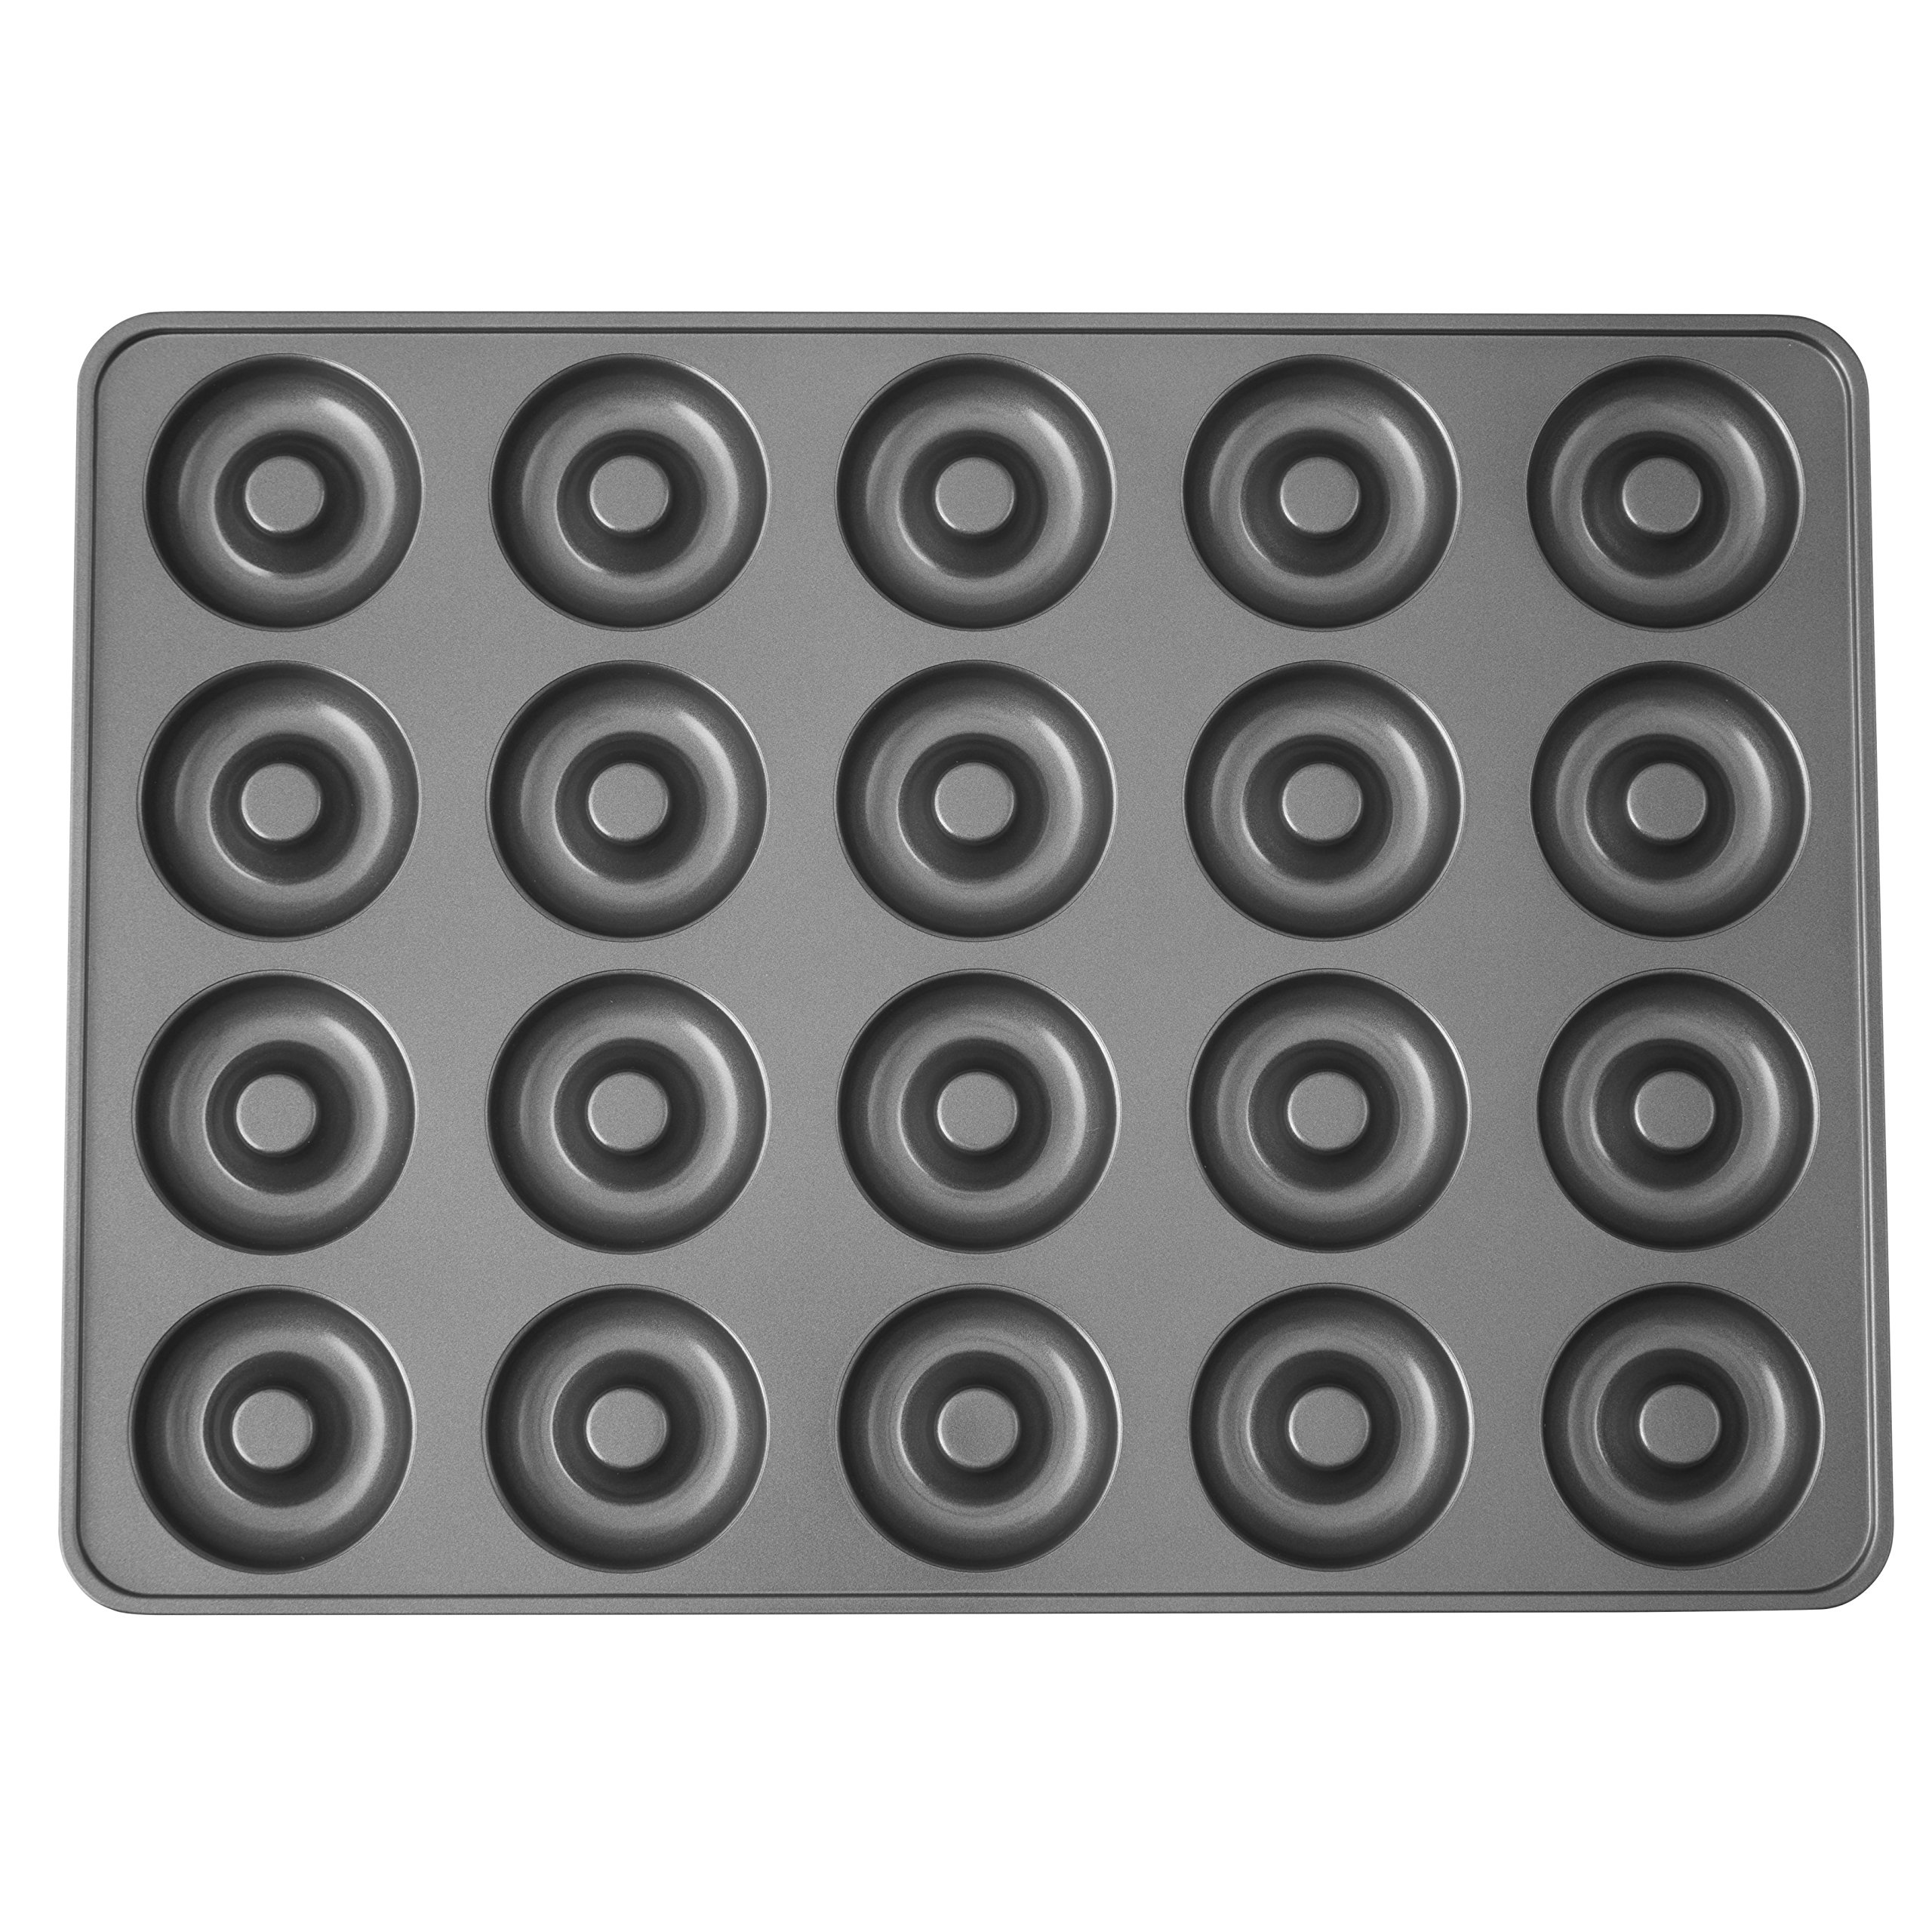 Wilton Perfect Results Non-Stick Donut Pan, 20-Cavity Donut Baking Pan